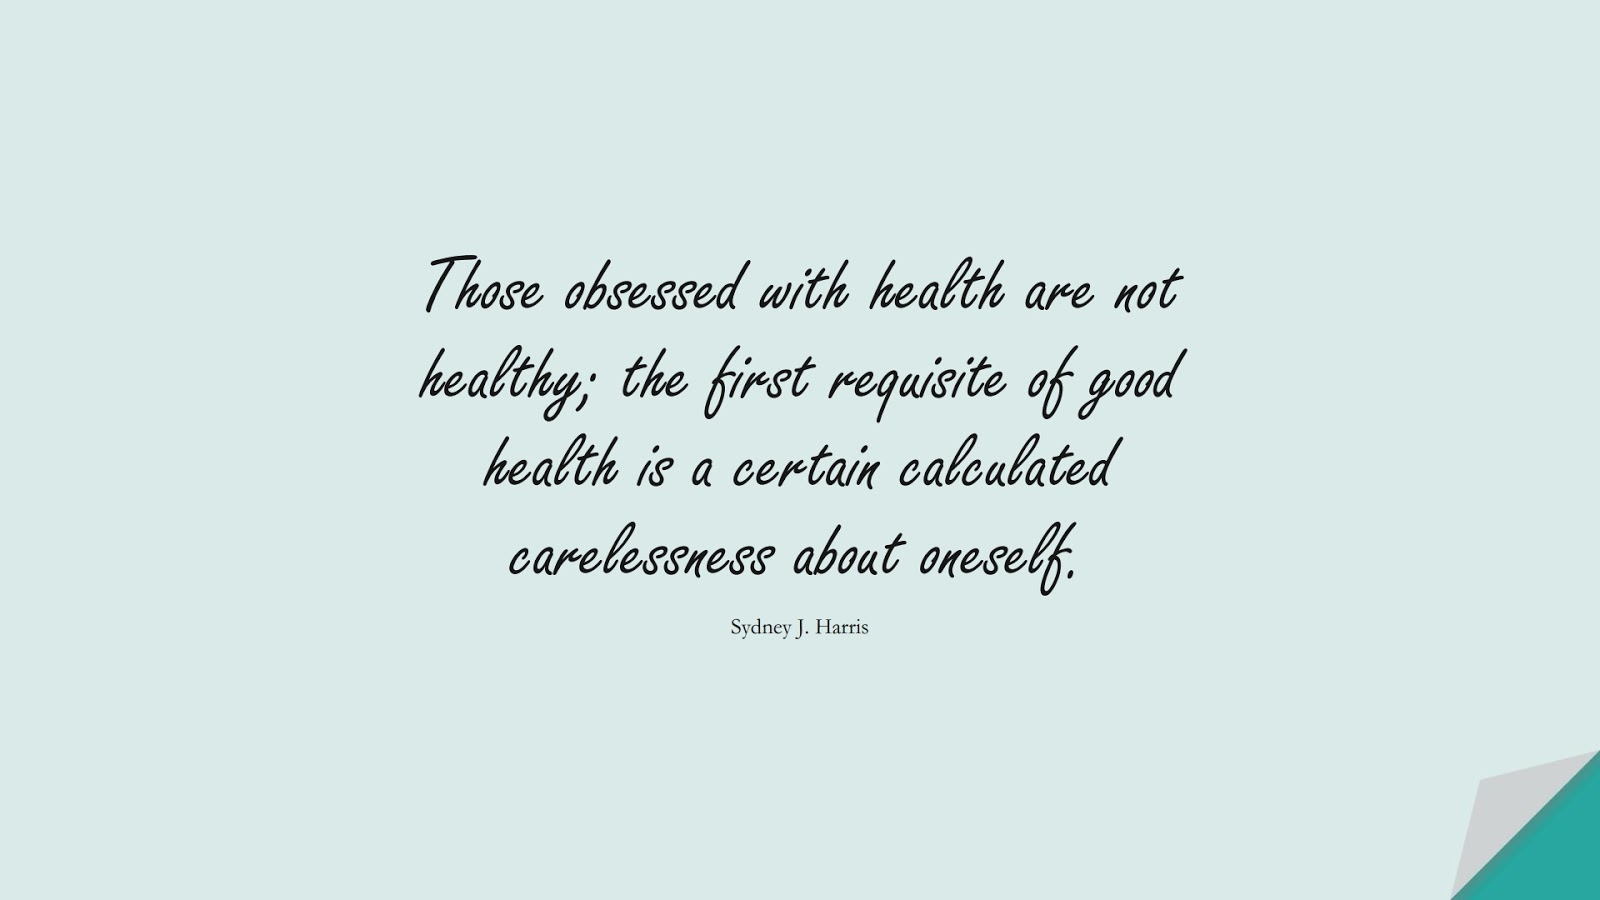 Those obsessed with health are not healthy; the first requisite of good health is a certain calculated carelessness about oneself. (Sydney J. Harris);  #HealthQuotes